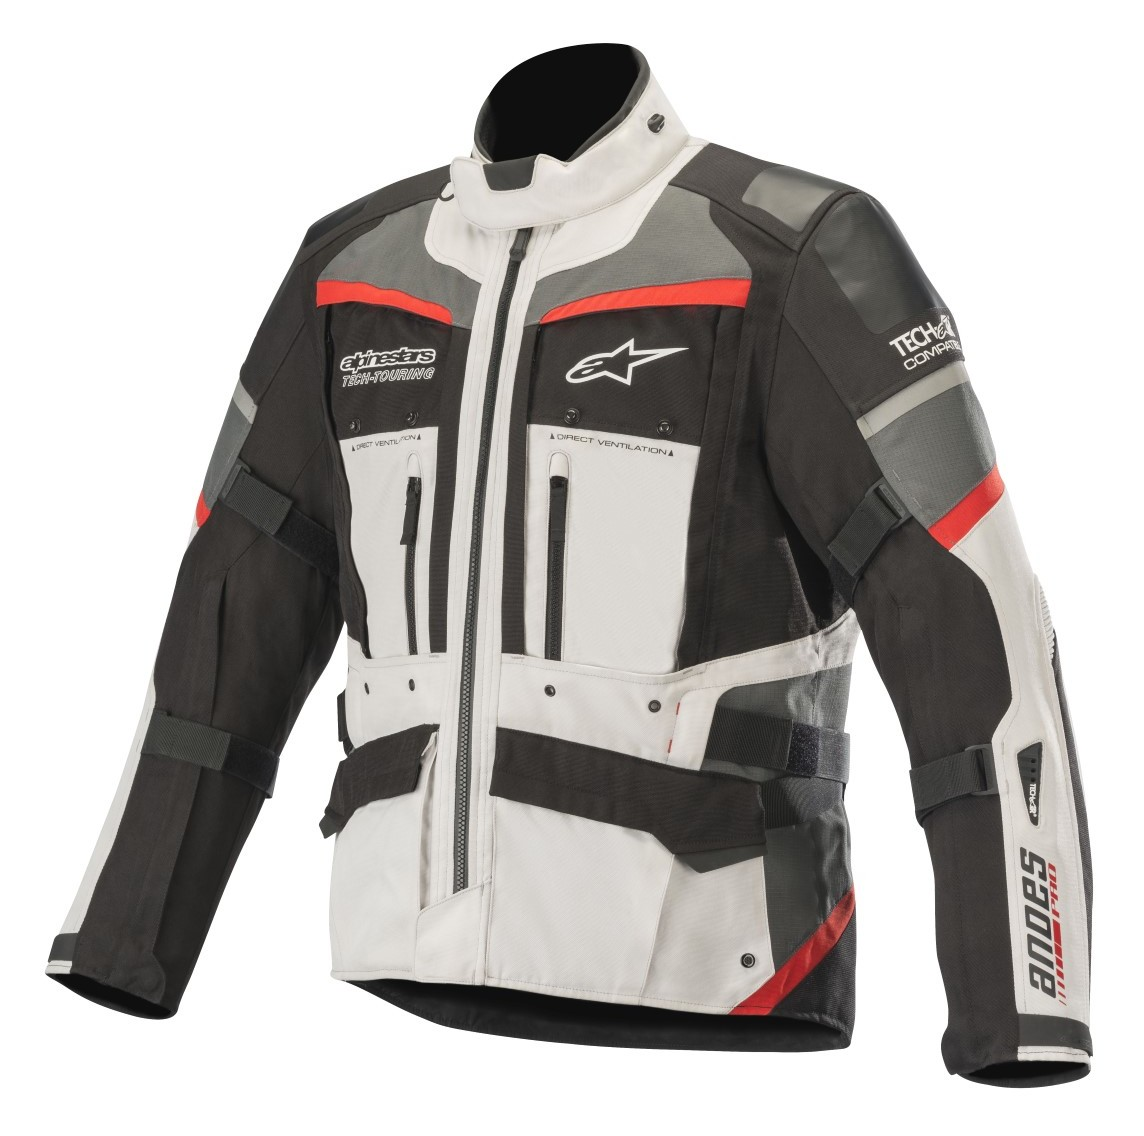 Alpinestars Andes Drystar V2 Jacket Motorcycle Street Bike Touring Waterproof